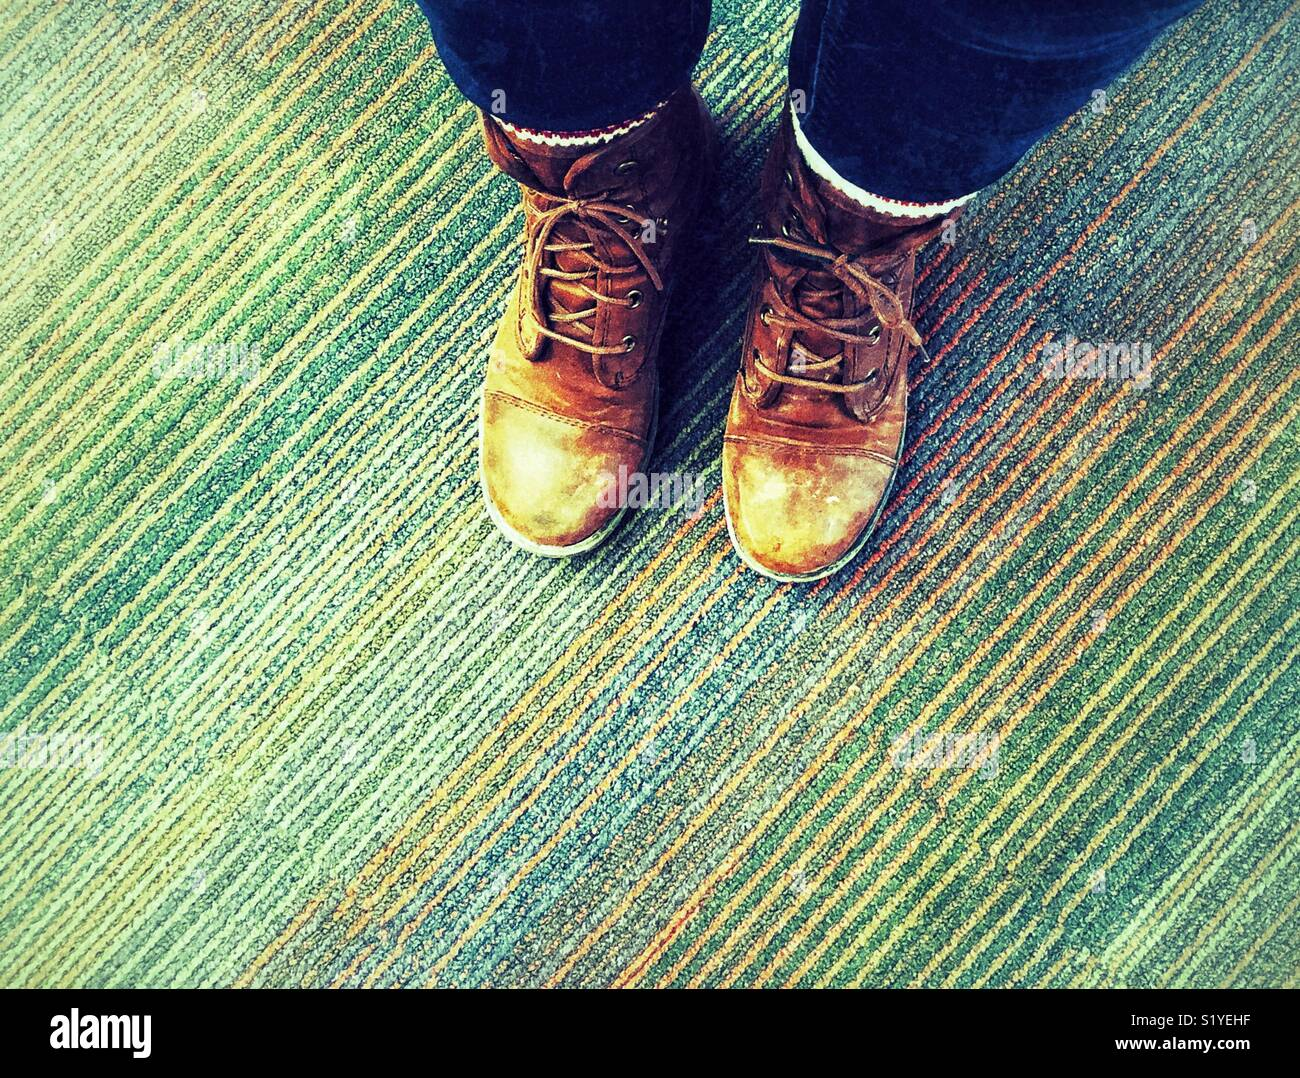 Looking down at person's feet wearing scuffed, old, brown work boots on a multicoloured carpet - Stock Image